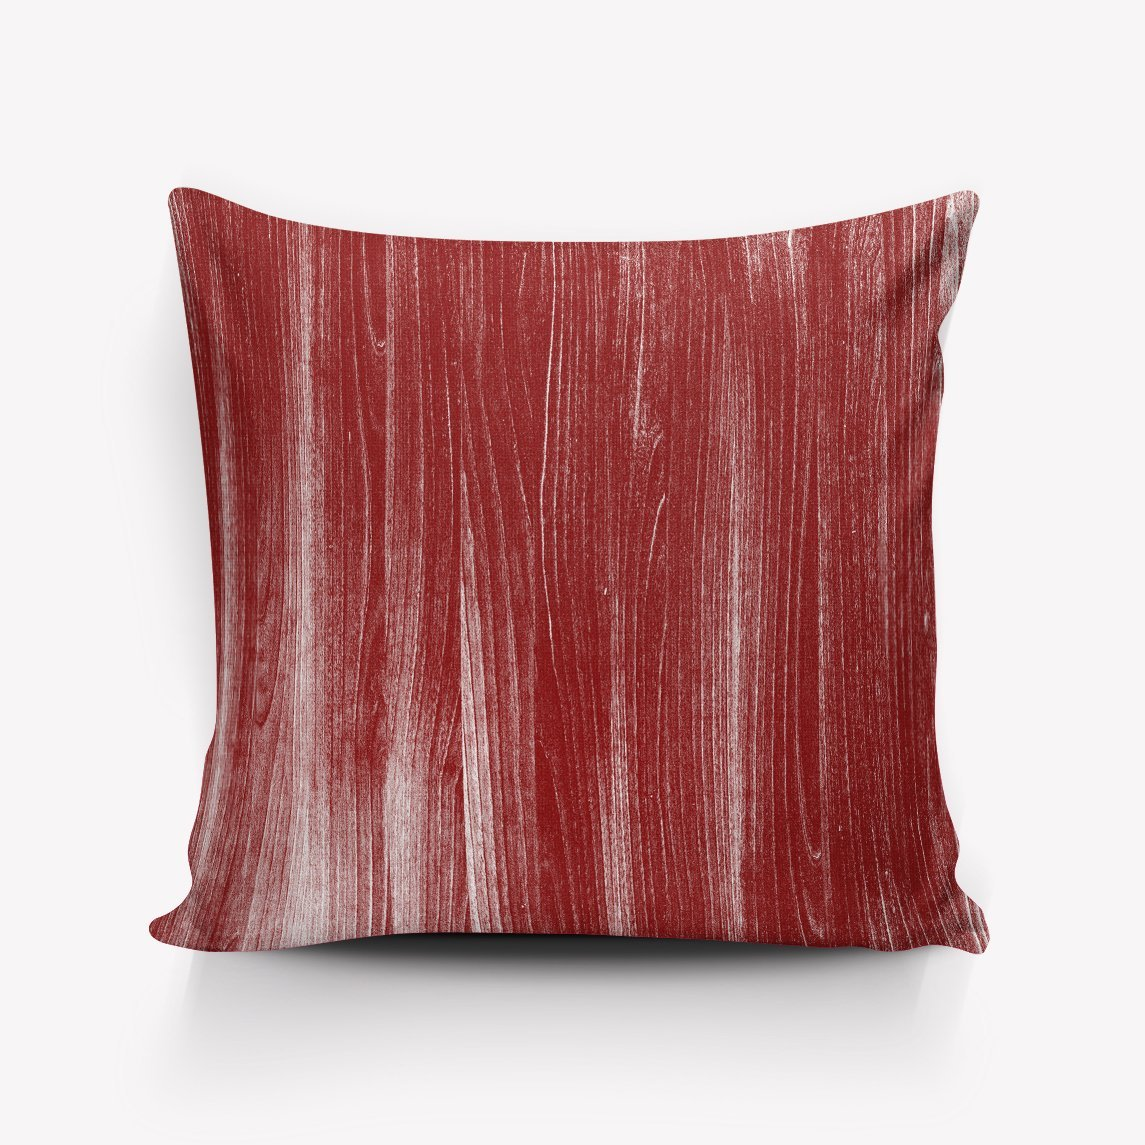 HomeCreator Satin Pillowcase Hidden Zippers Ultra-Soft Hypoallergenic Wrinkle, Fade, Stain Resistant Pillowcases Wood Red Pattern Pillow Case Room Decor 26'' x 26''